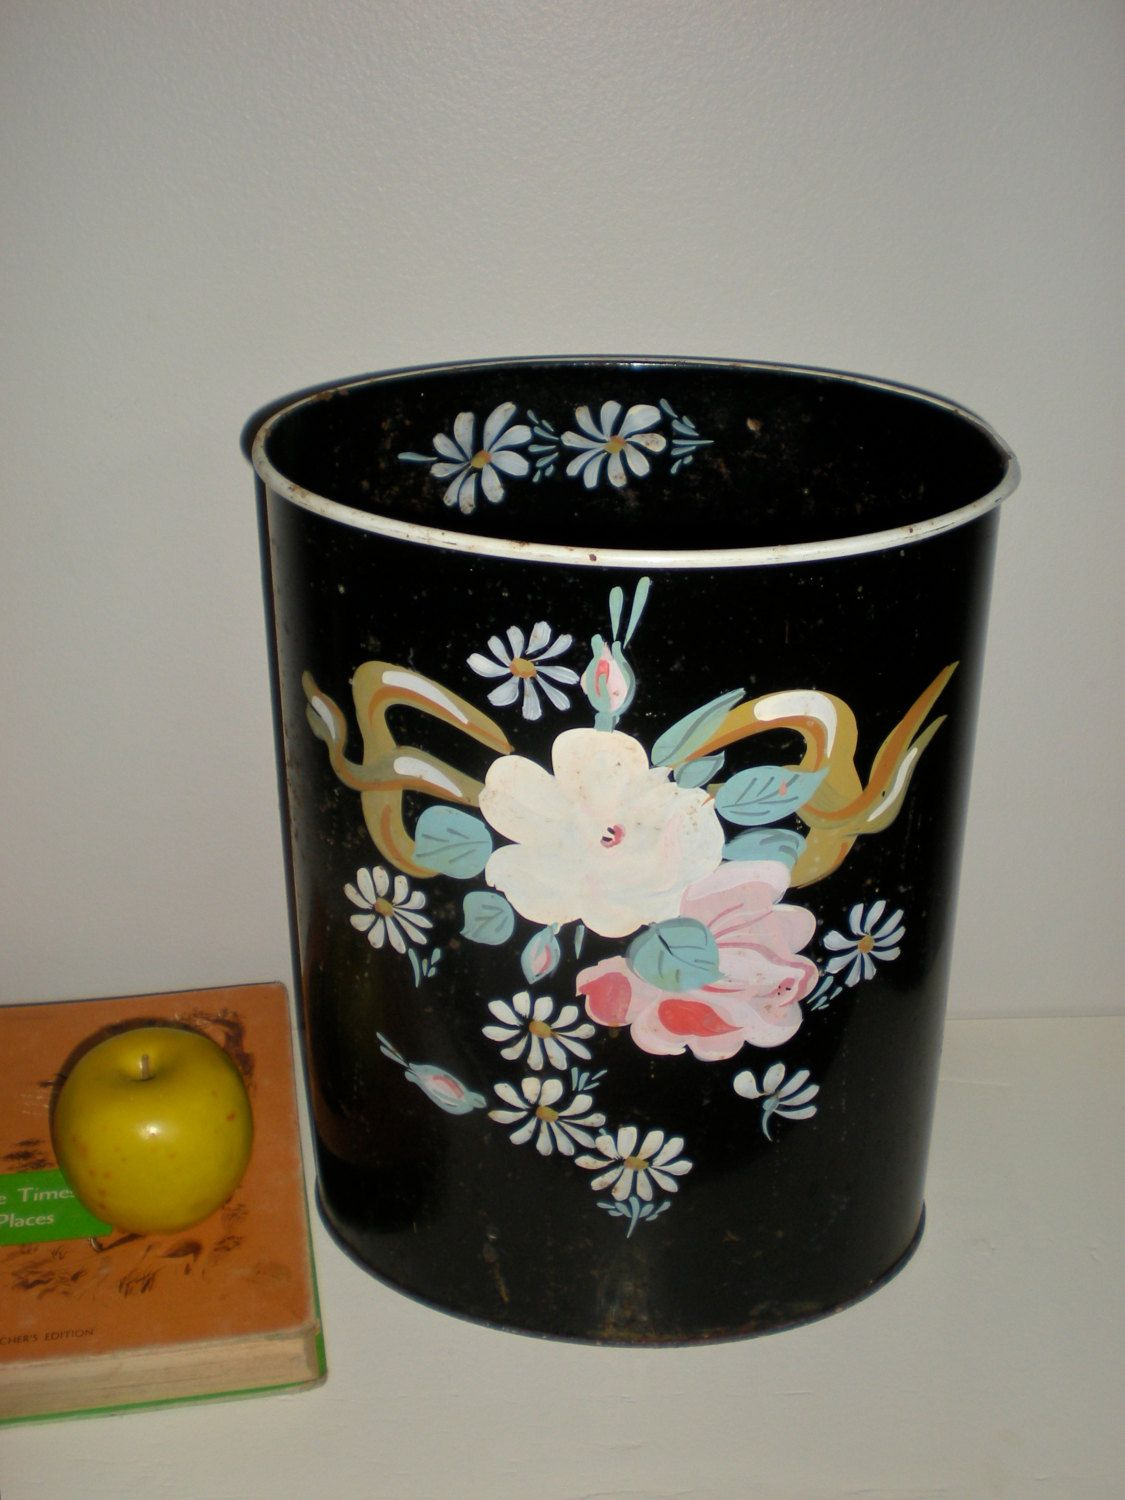 Shabby Chic Waste Baskets Ransburg Trash Basket Can Bin Black Metal Tole Painted Flowers